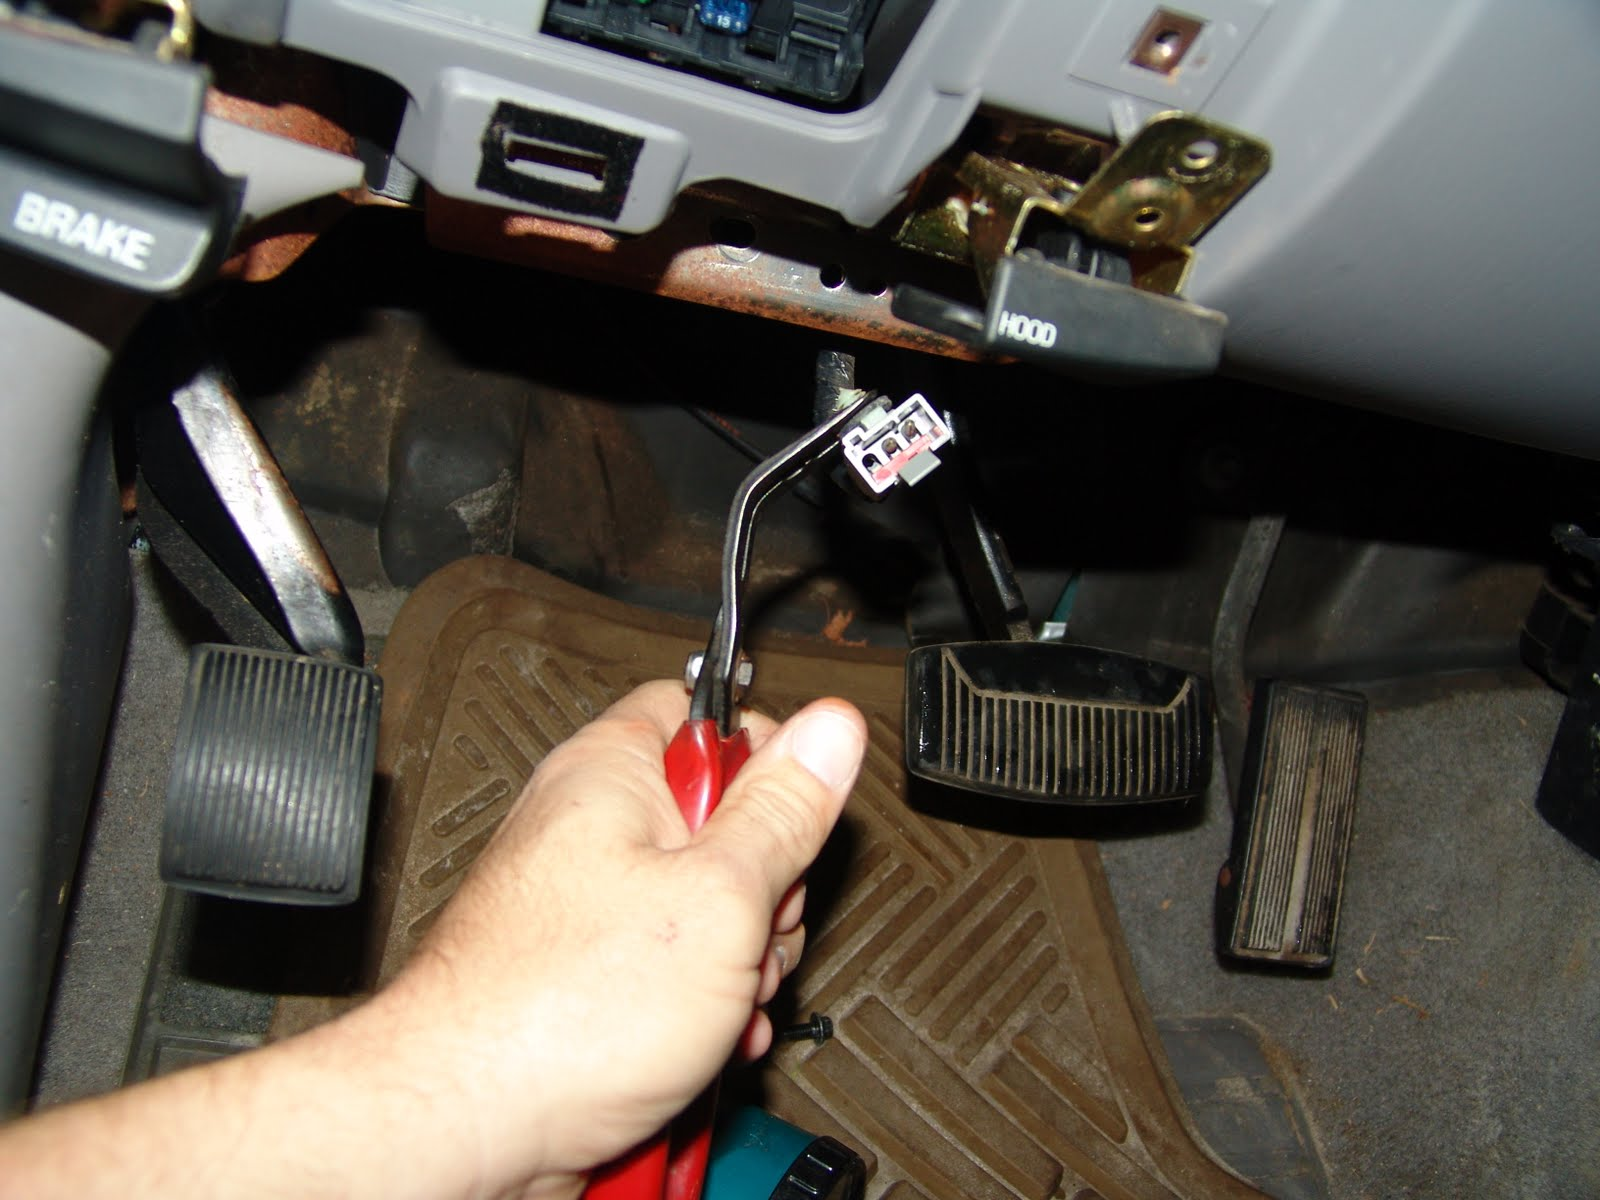 1997 F150, Changing The GEM Module, Window & Wipers Inop